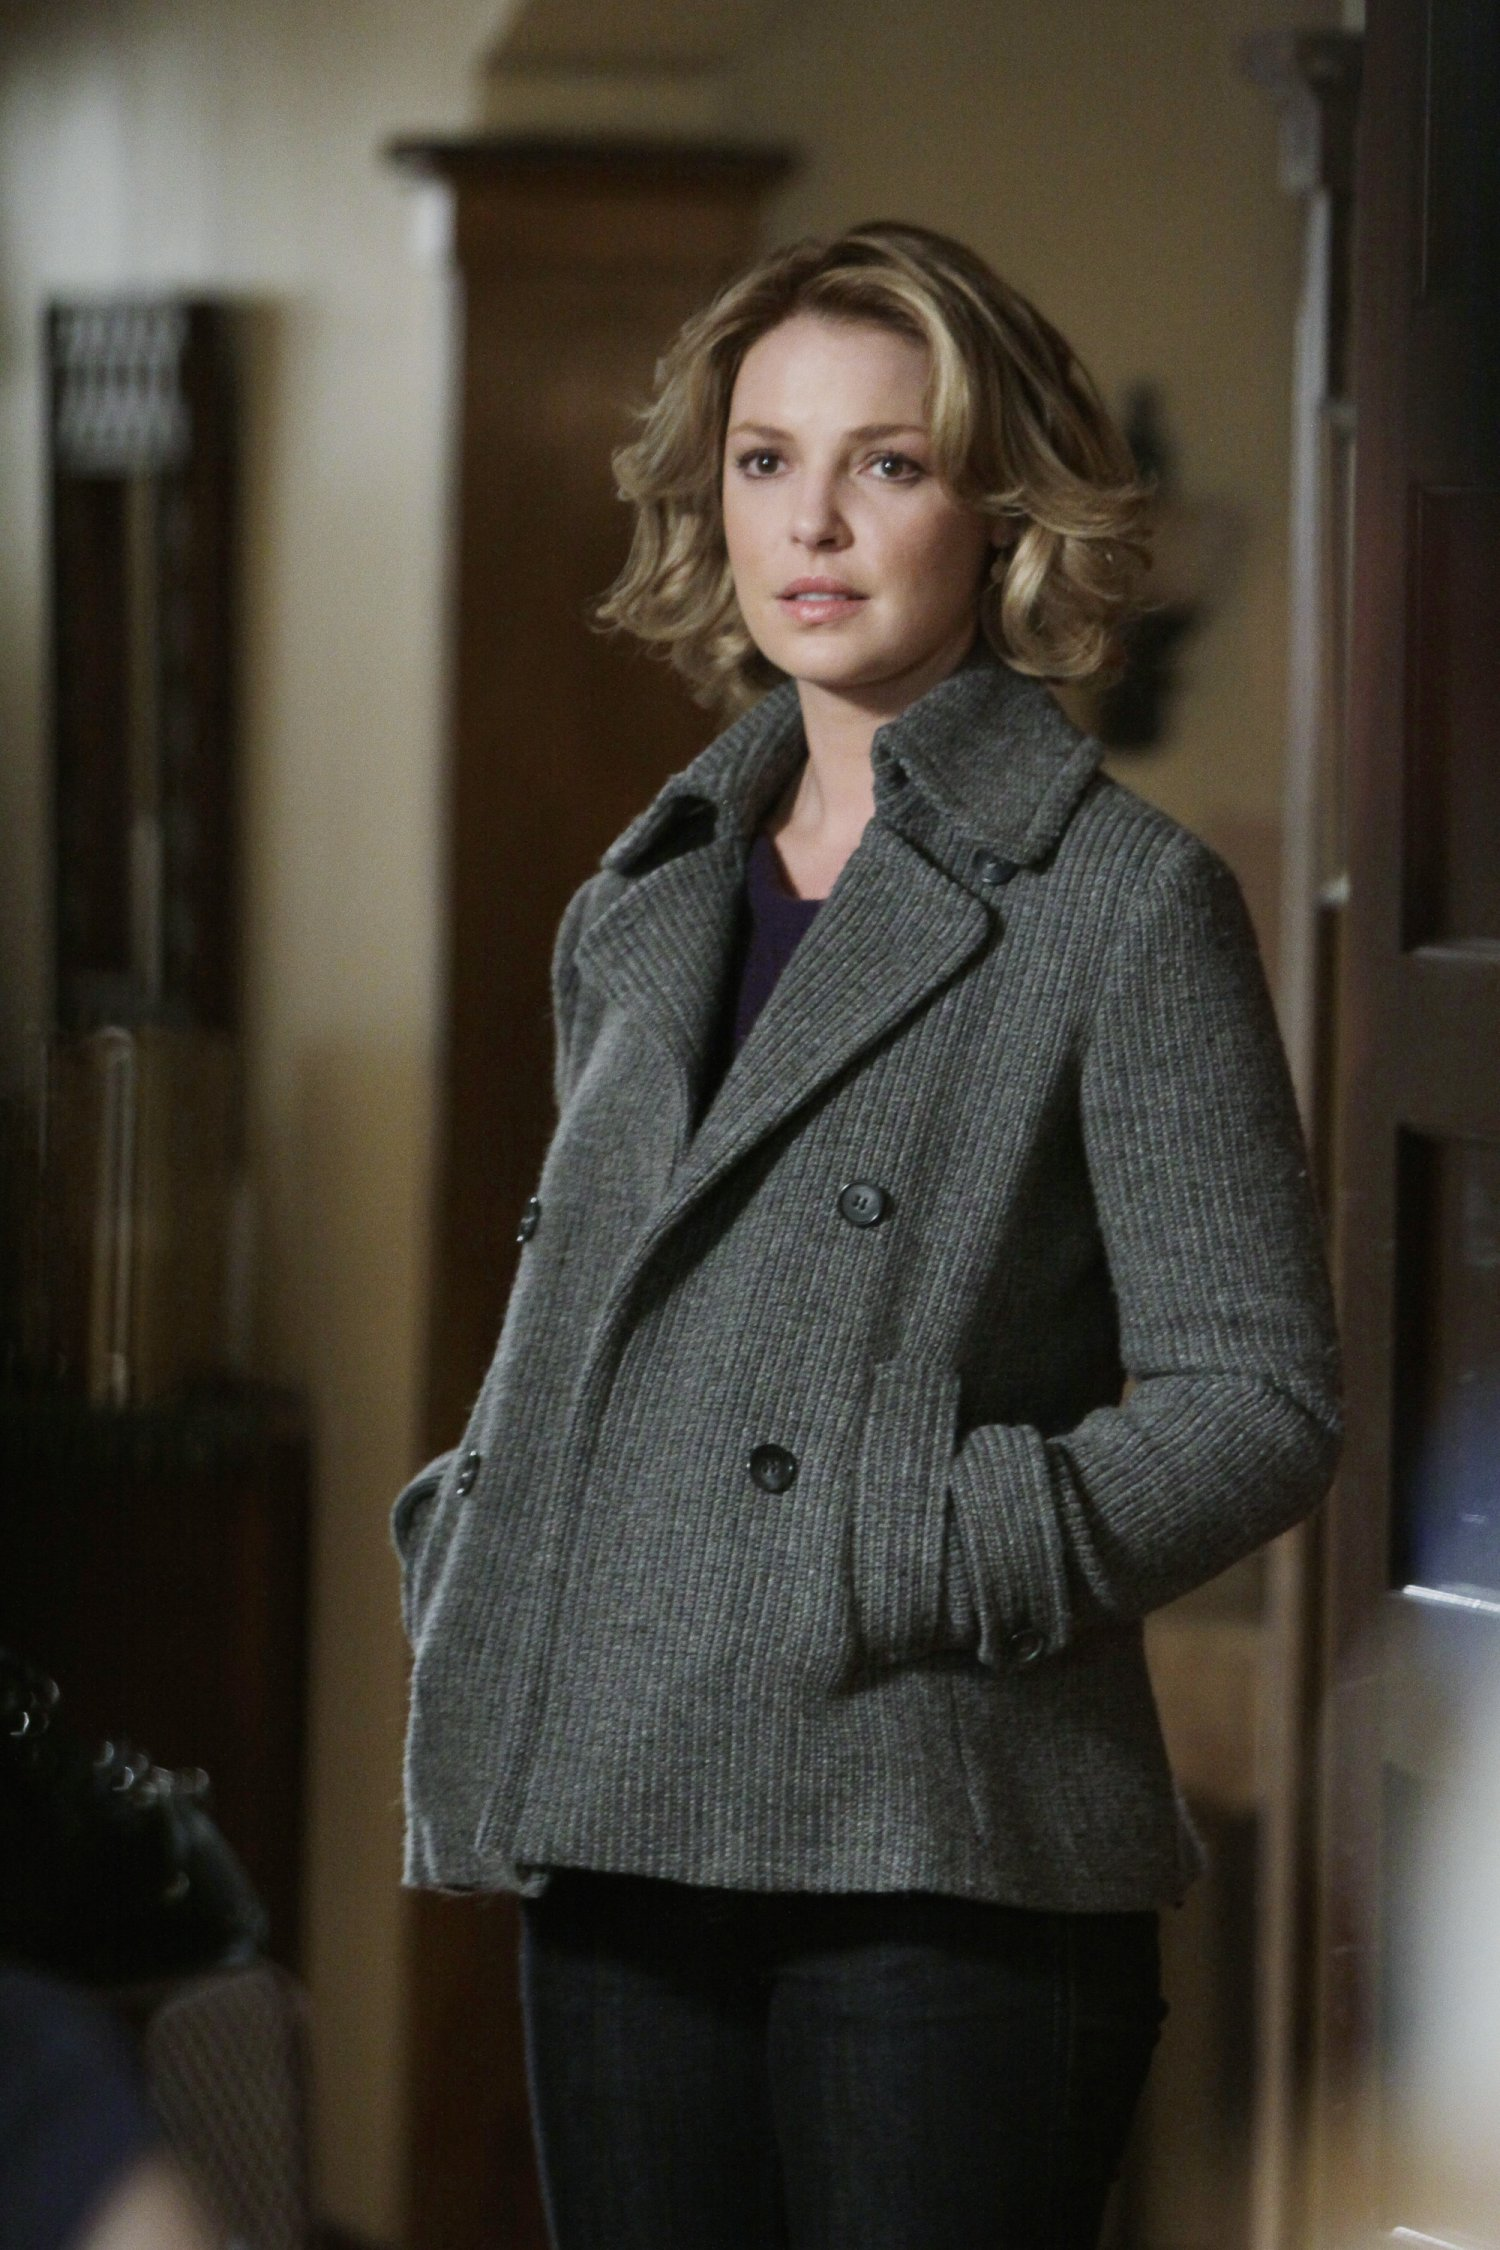 Izzie Stevens | Grey\'s Anatomy Universe Wiki | FANDOM powered by Wikia